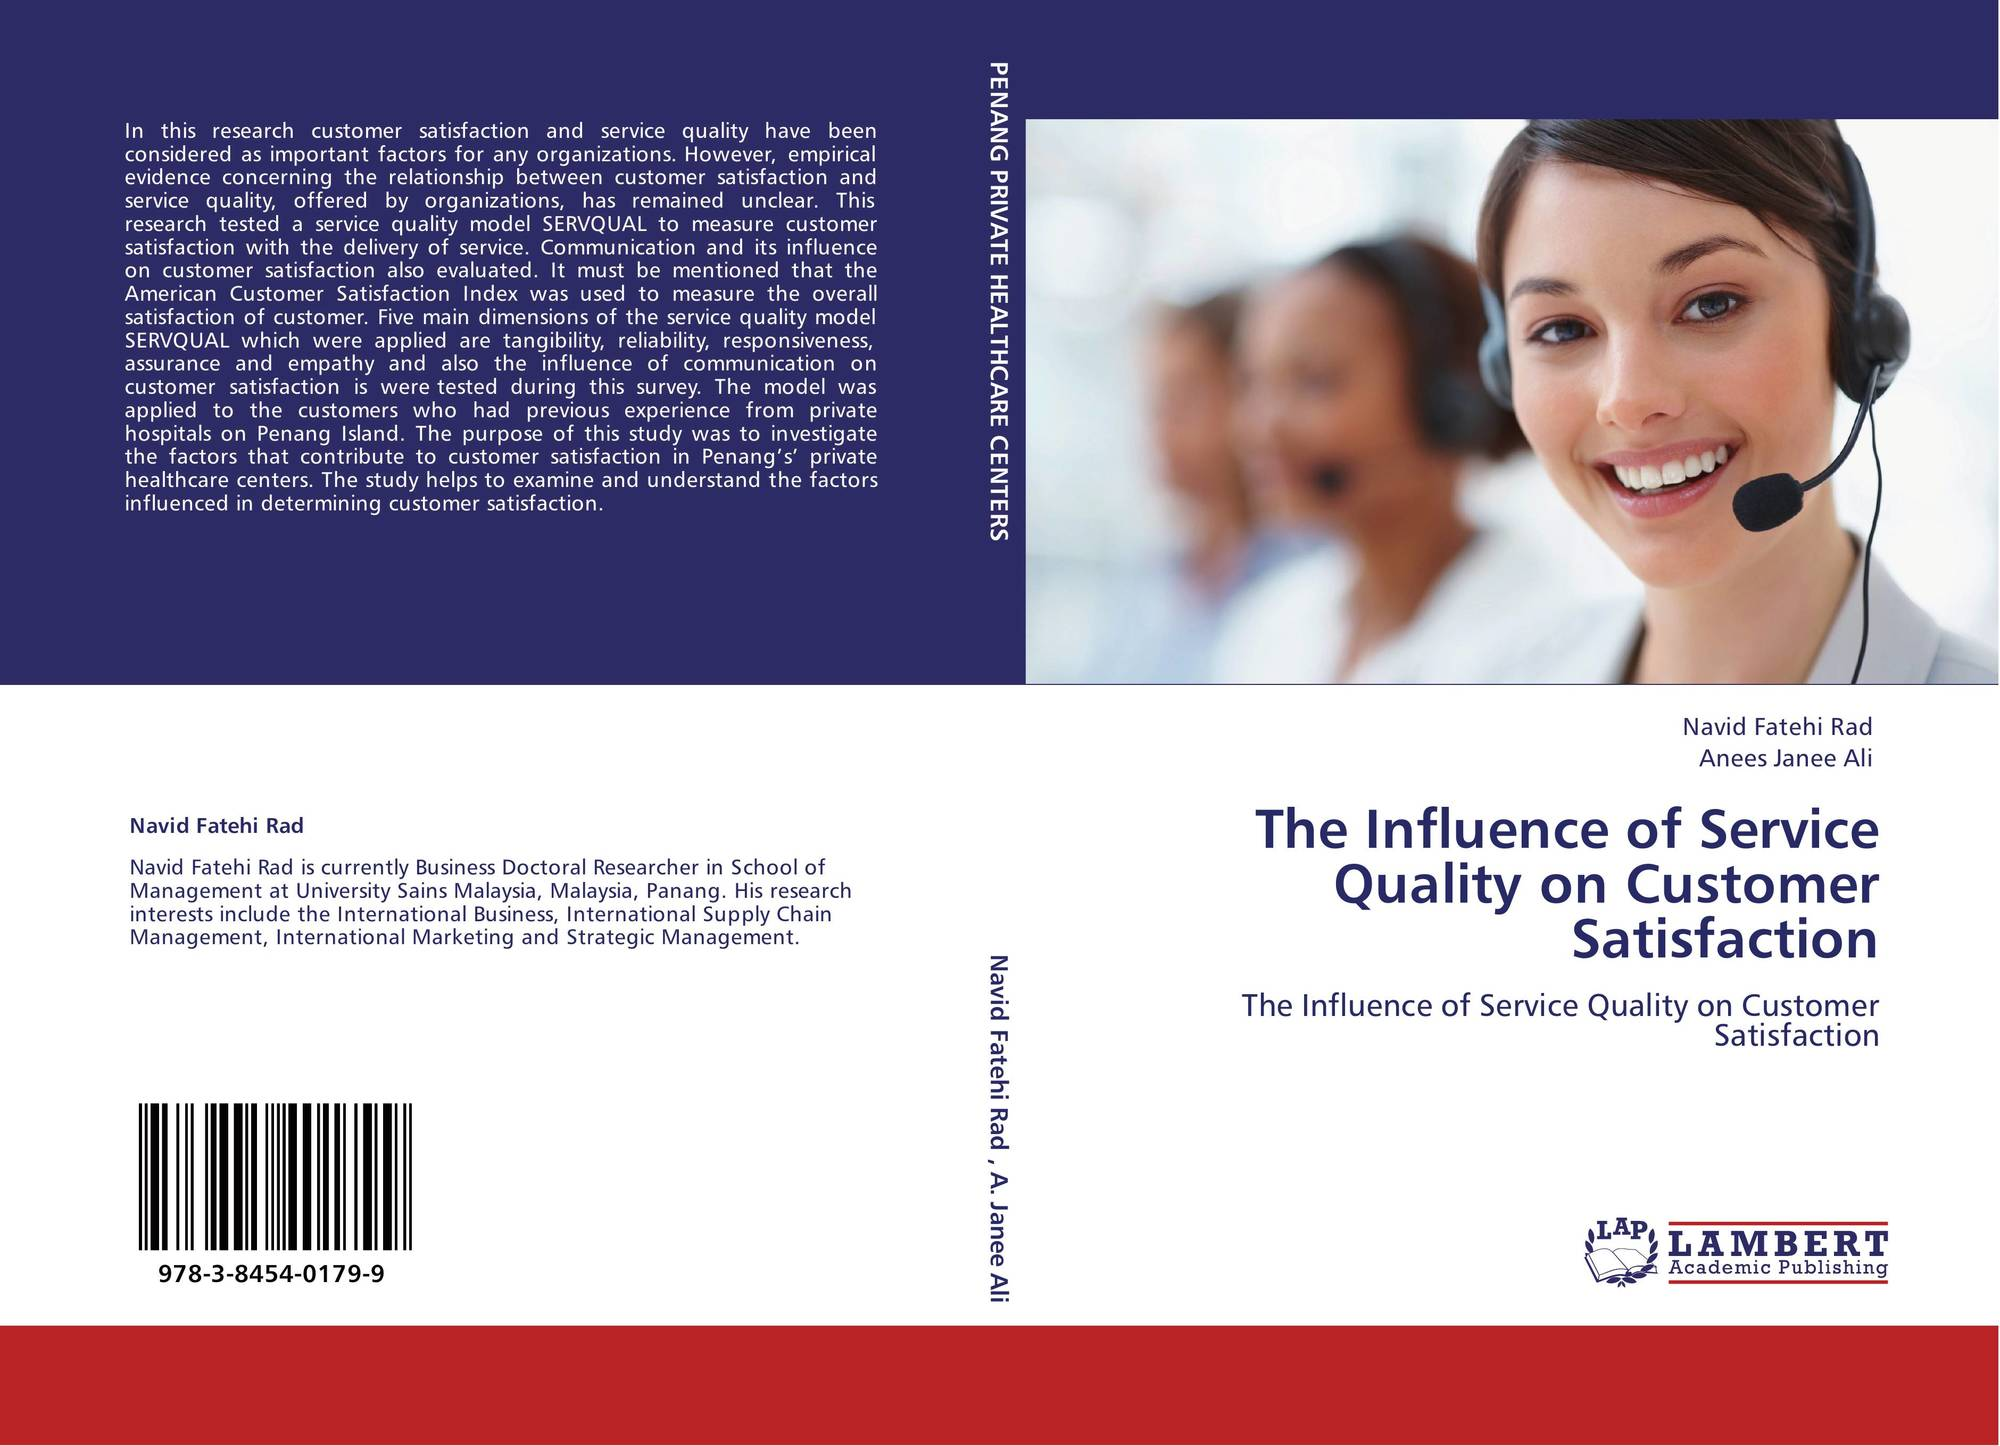 study to investigate the customer loyalty Customer loyalty is the continued and regular patronage of a business in the face of alternative economic activities and competitive attempts to disrupt the relationship customer loyalty often results in other secondary benefits to the firm such as brand advocacy, direct referrals, and price insensitivity.